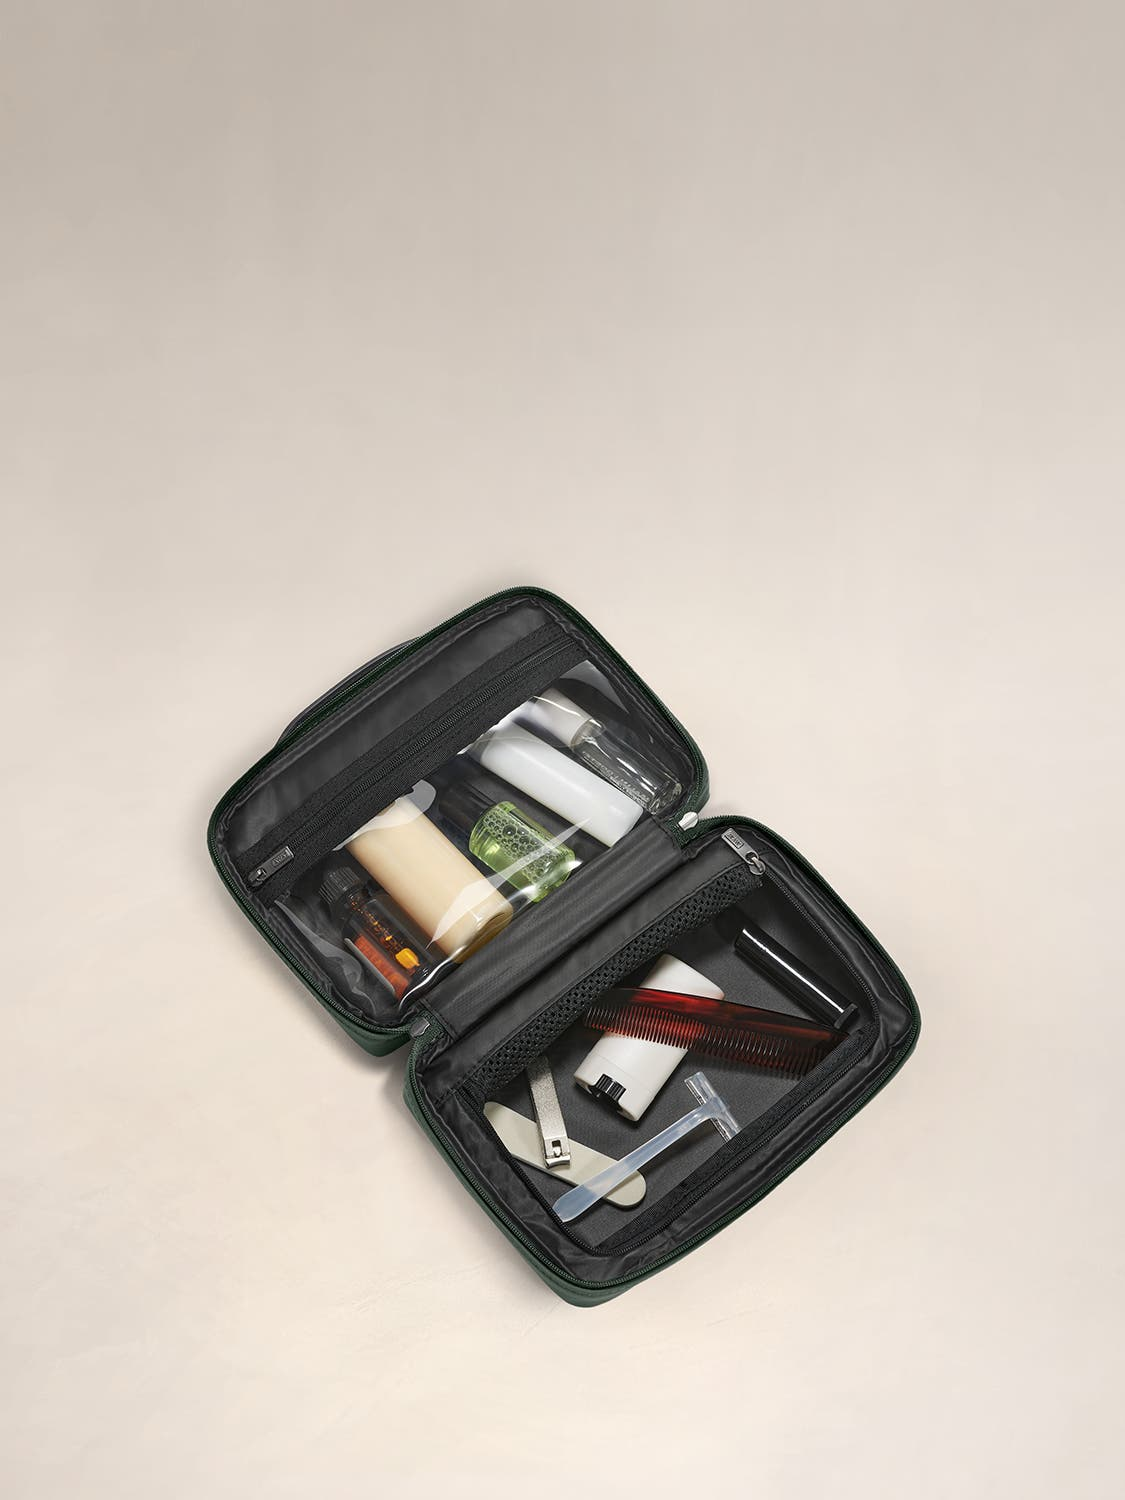 Inside view of a small toiletry kit in green with interior pockets shown and full of travel toiletries.